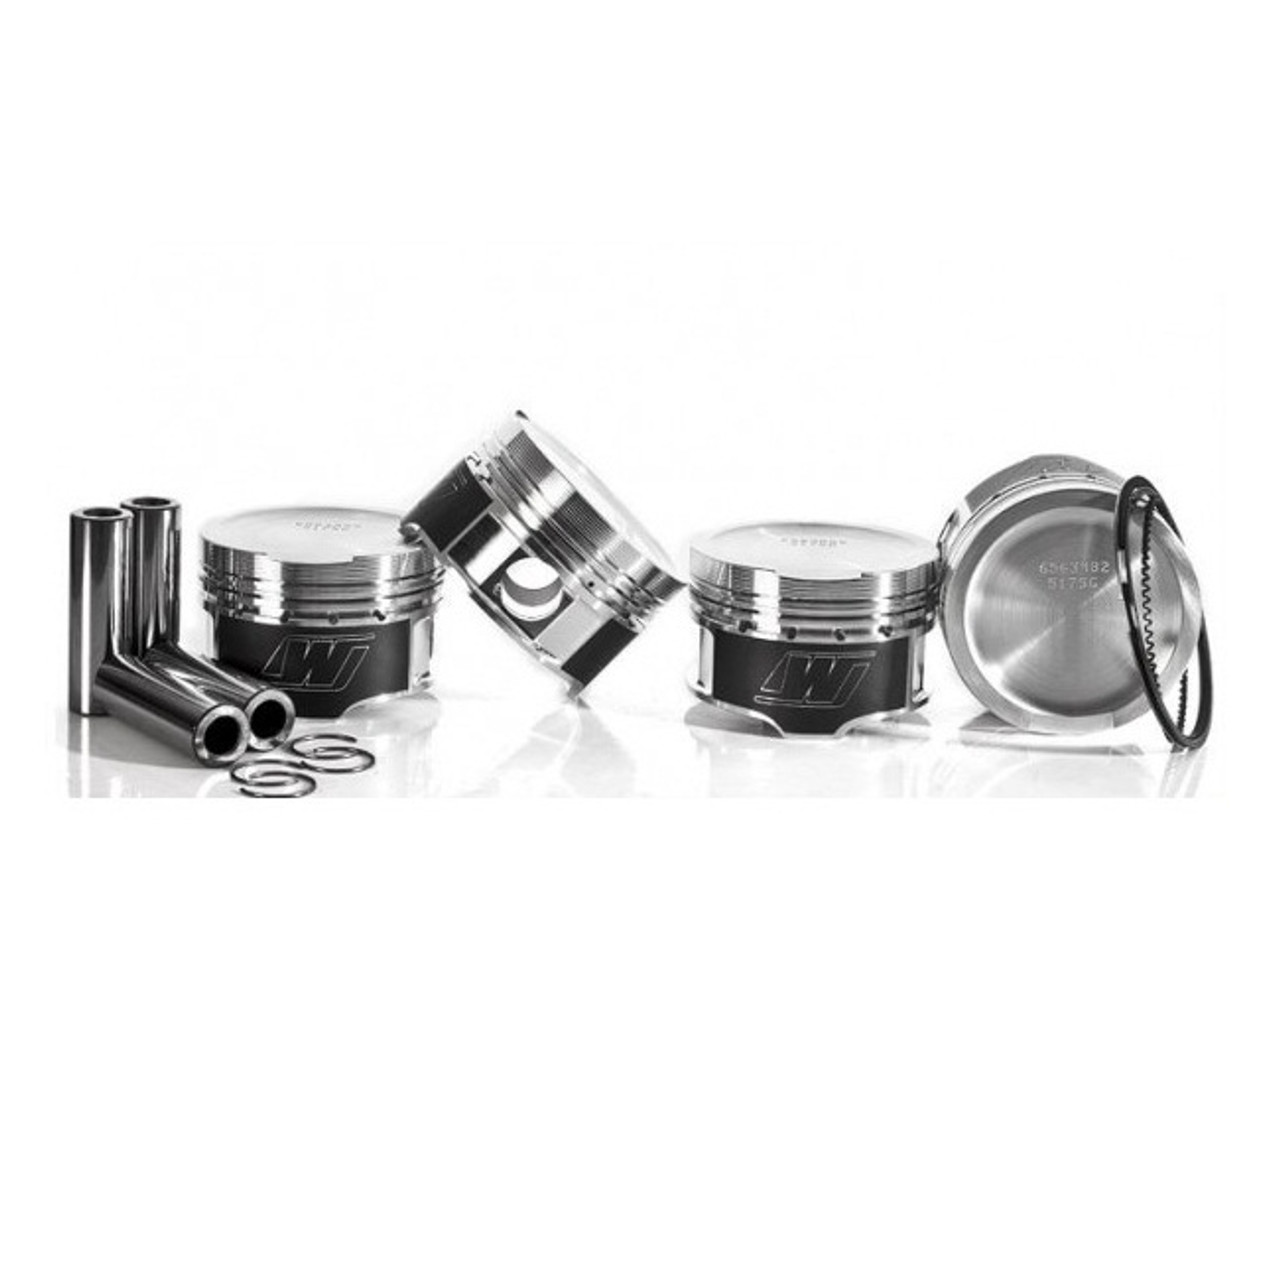 Wiseco Forged Pistons (Includes Rings)